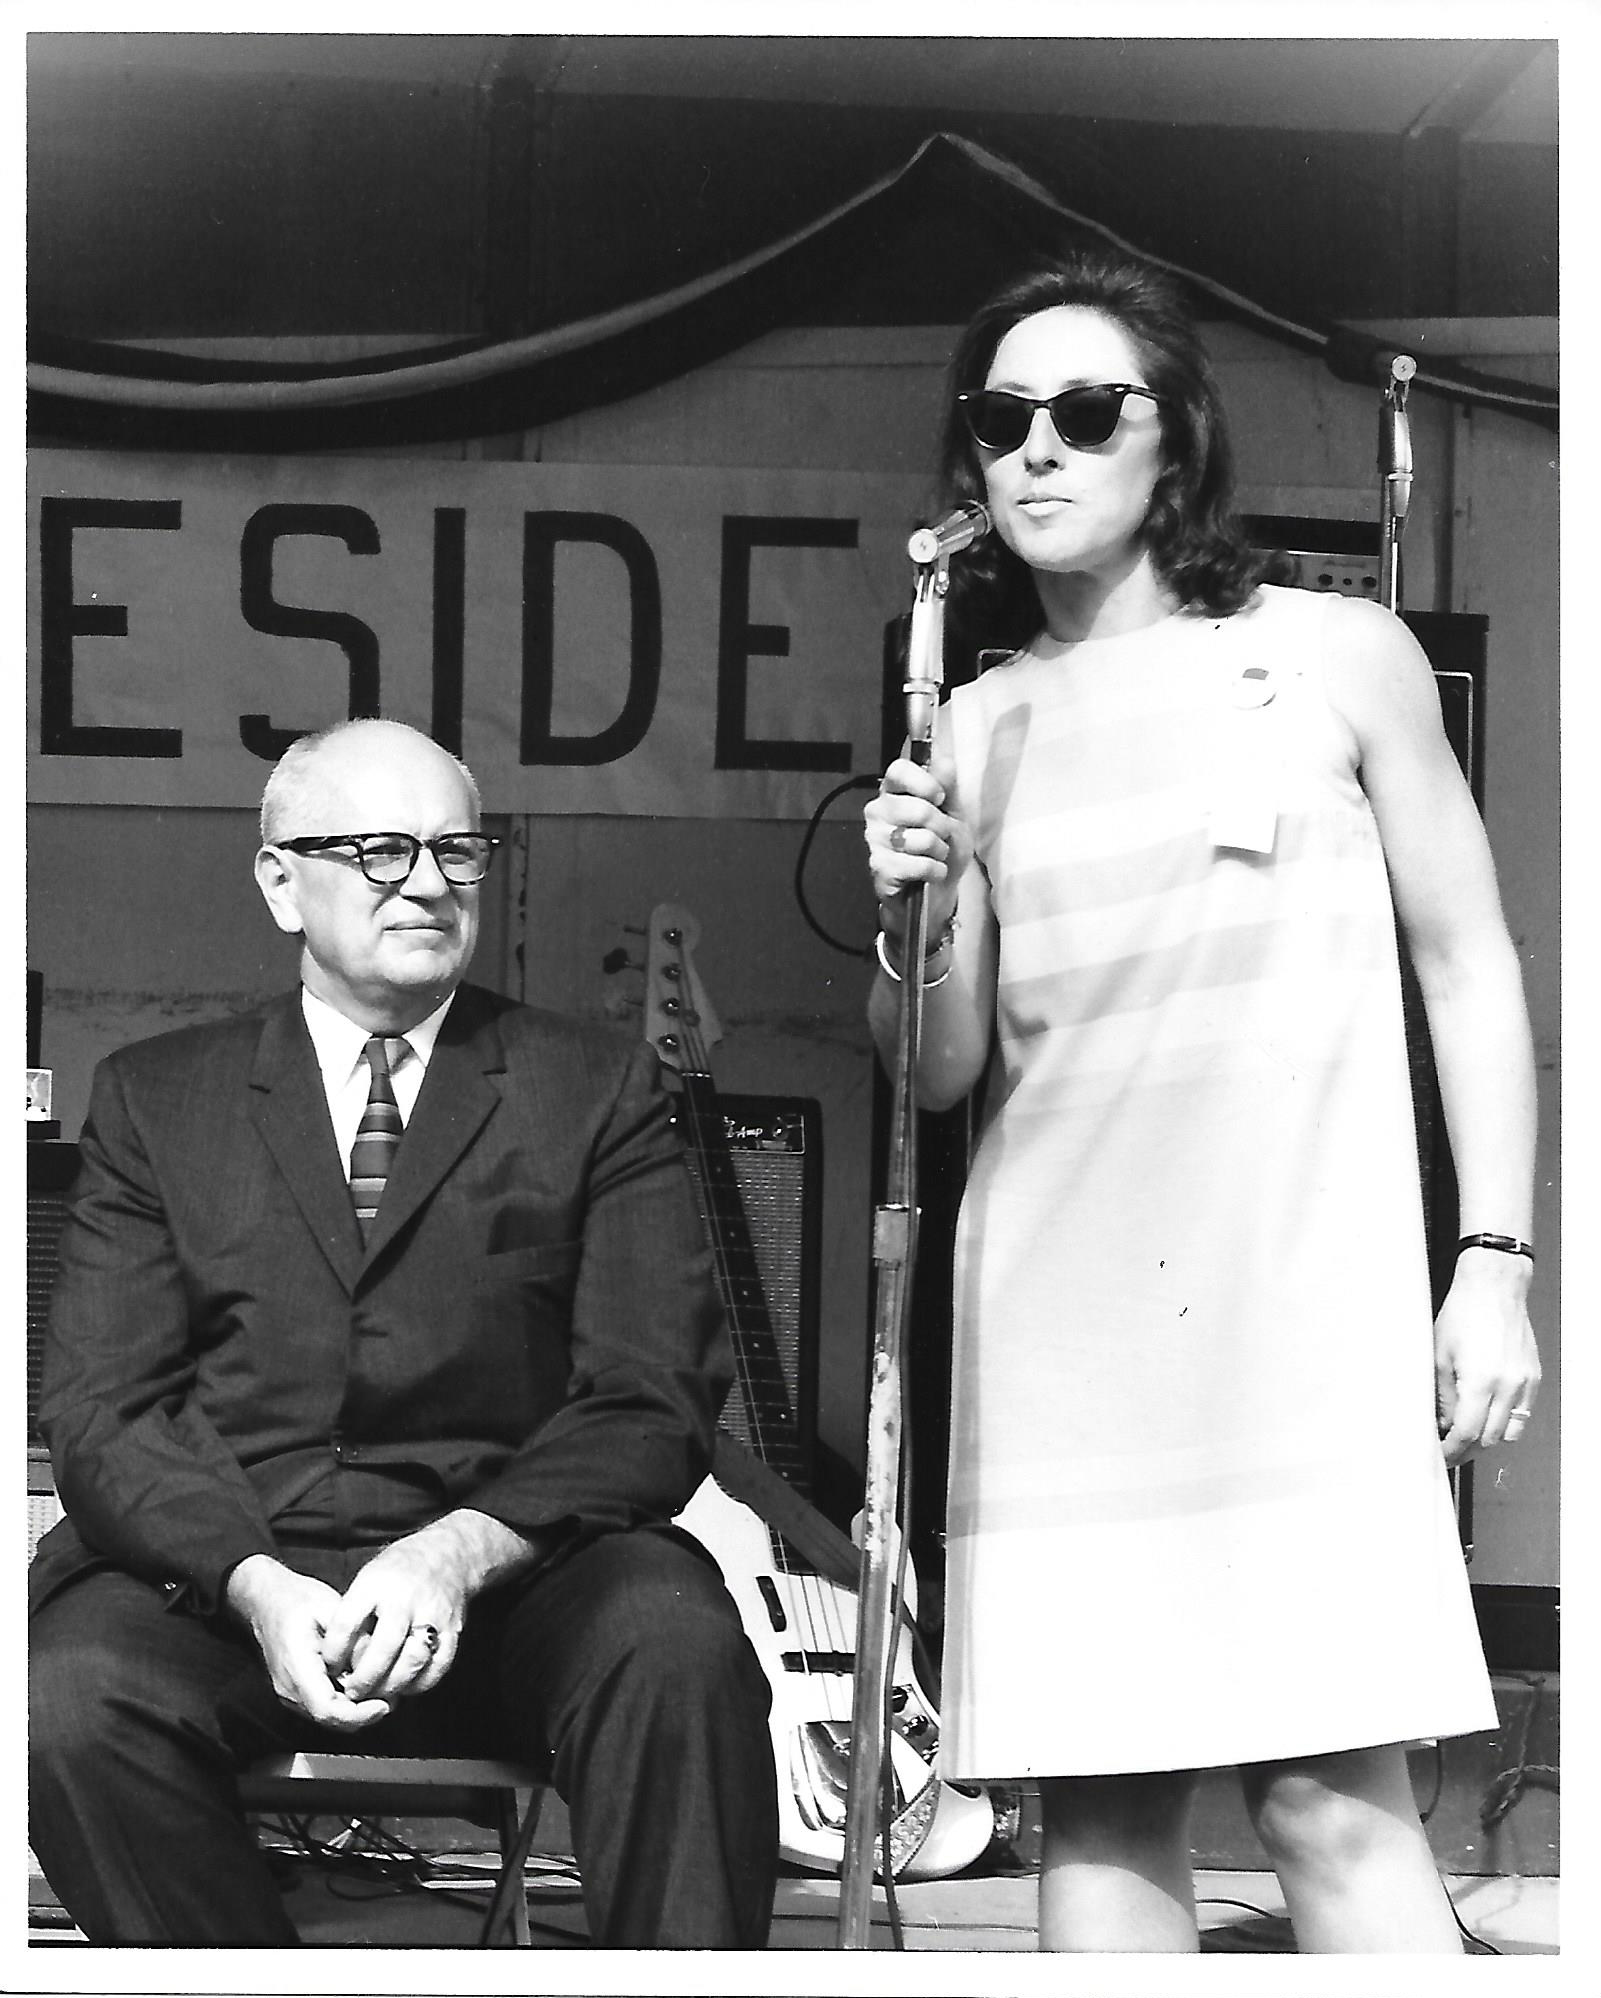 Summer, 1968Sonia Schorr Sloan - Introducing Mary Beth Yarrow at a rally in Wilmington, DE, along with Mayor John Babiarz, one of the few office holders who would publicly support anyone running against the sitting President.